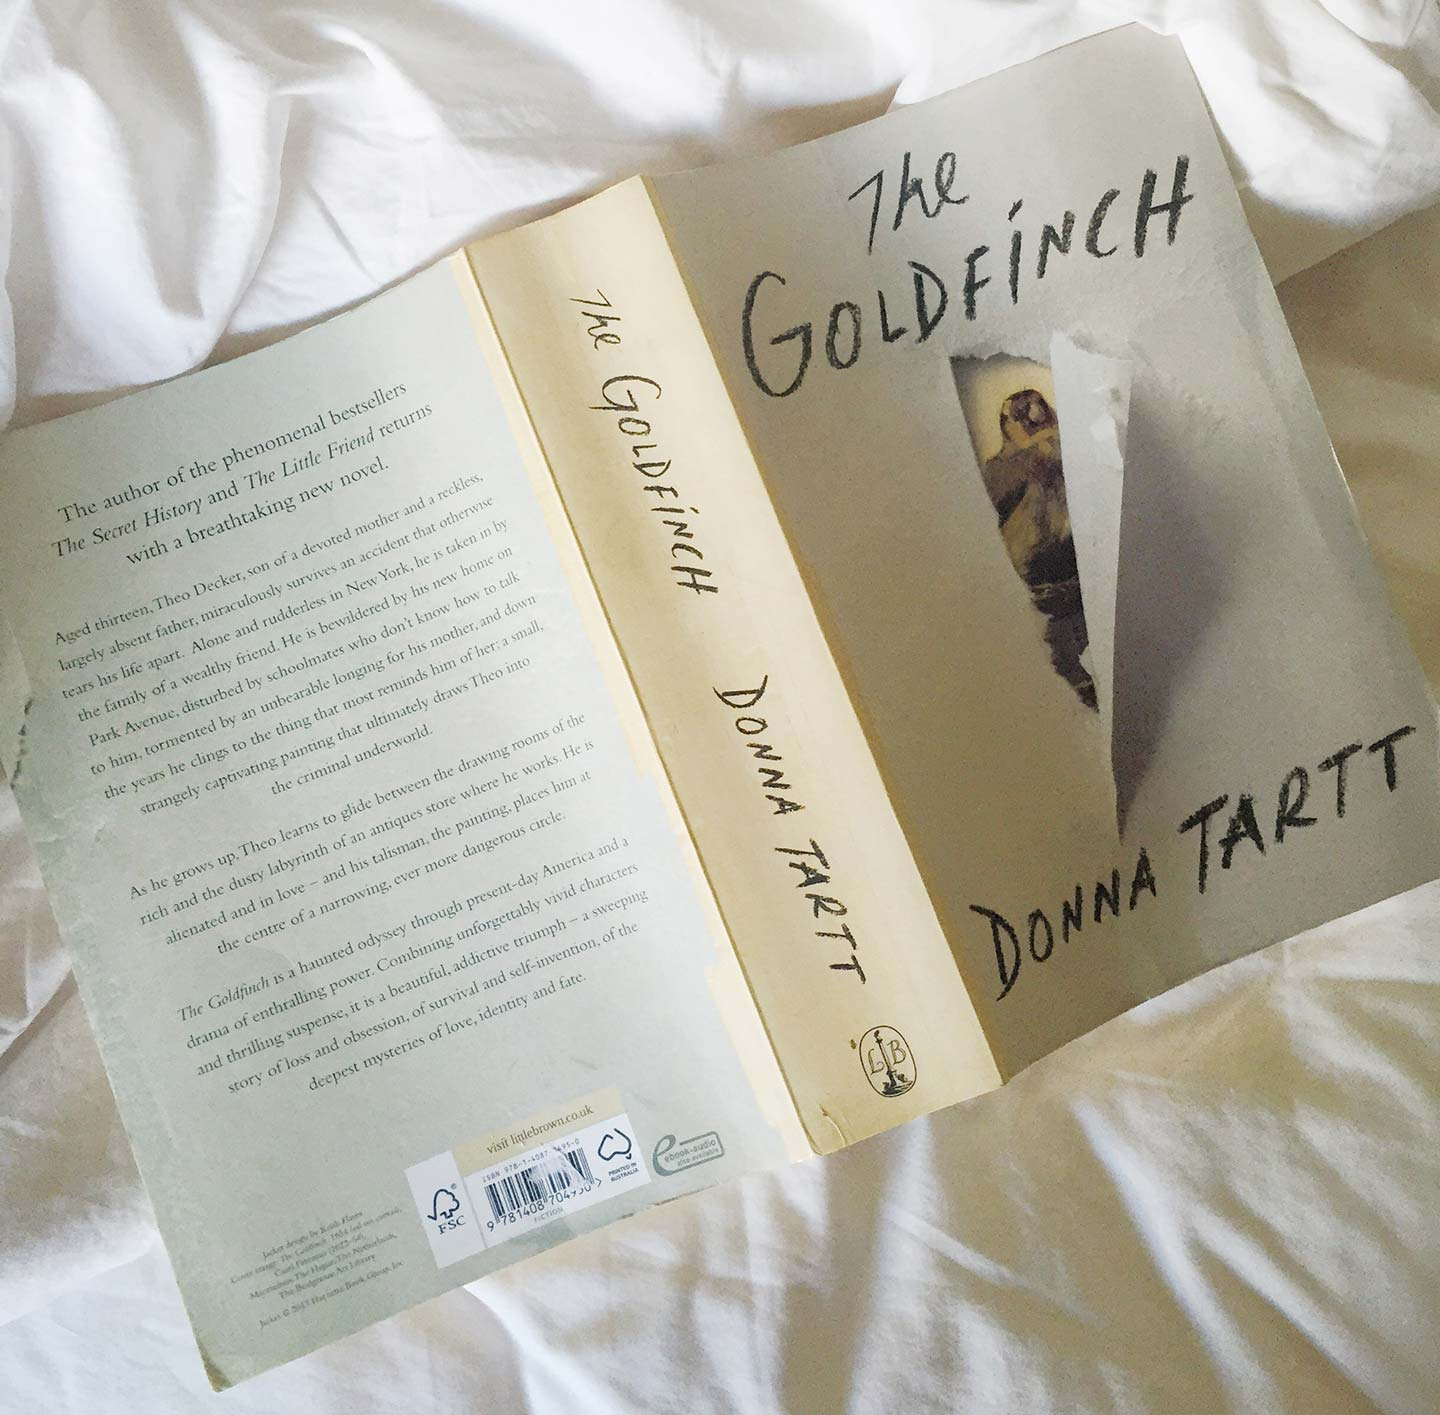 goldfinch book donna tartt reading on a bed